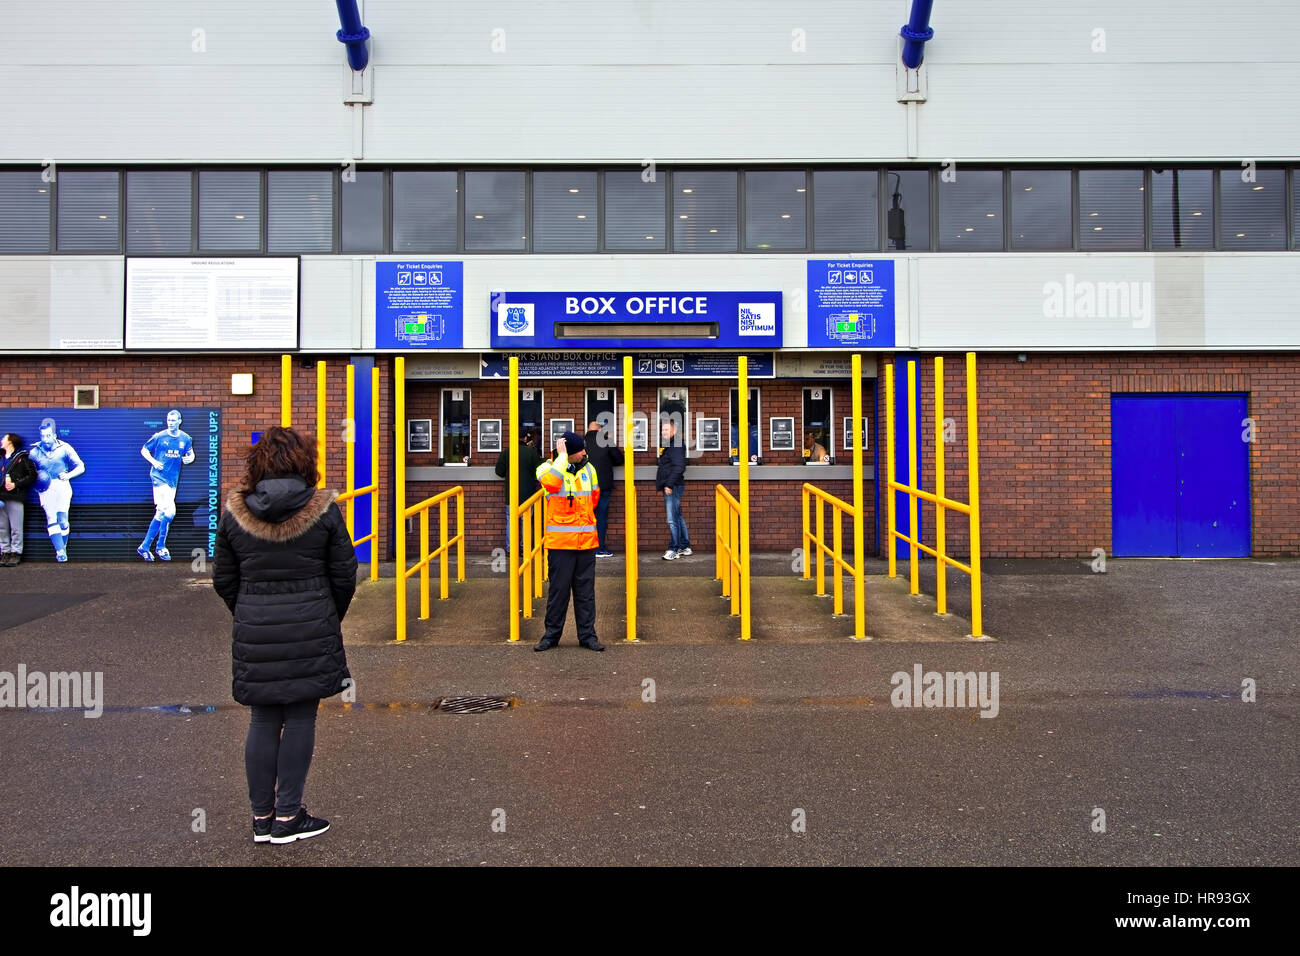 Box office at Goodison Park, home of Everton Football Club, Liverpool UK Stock Photo